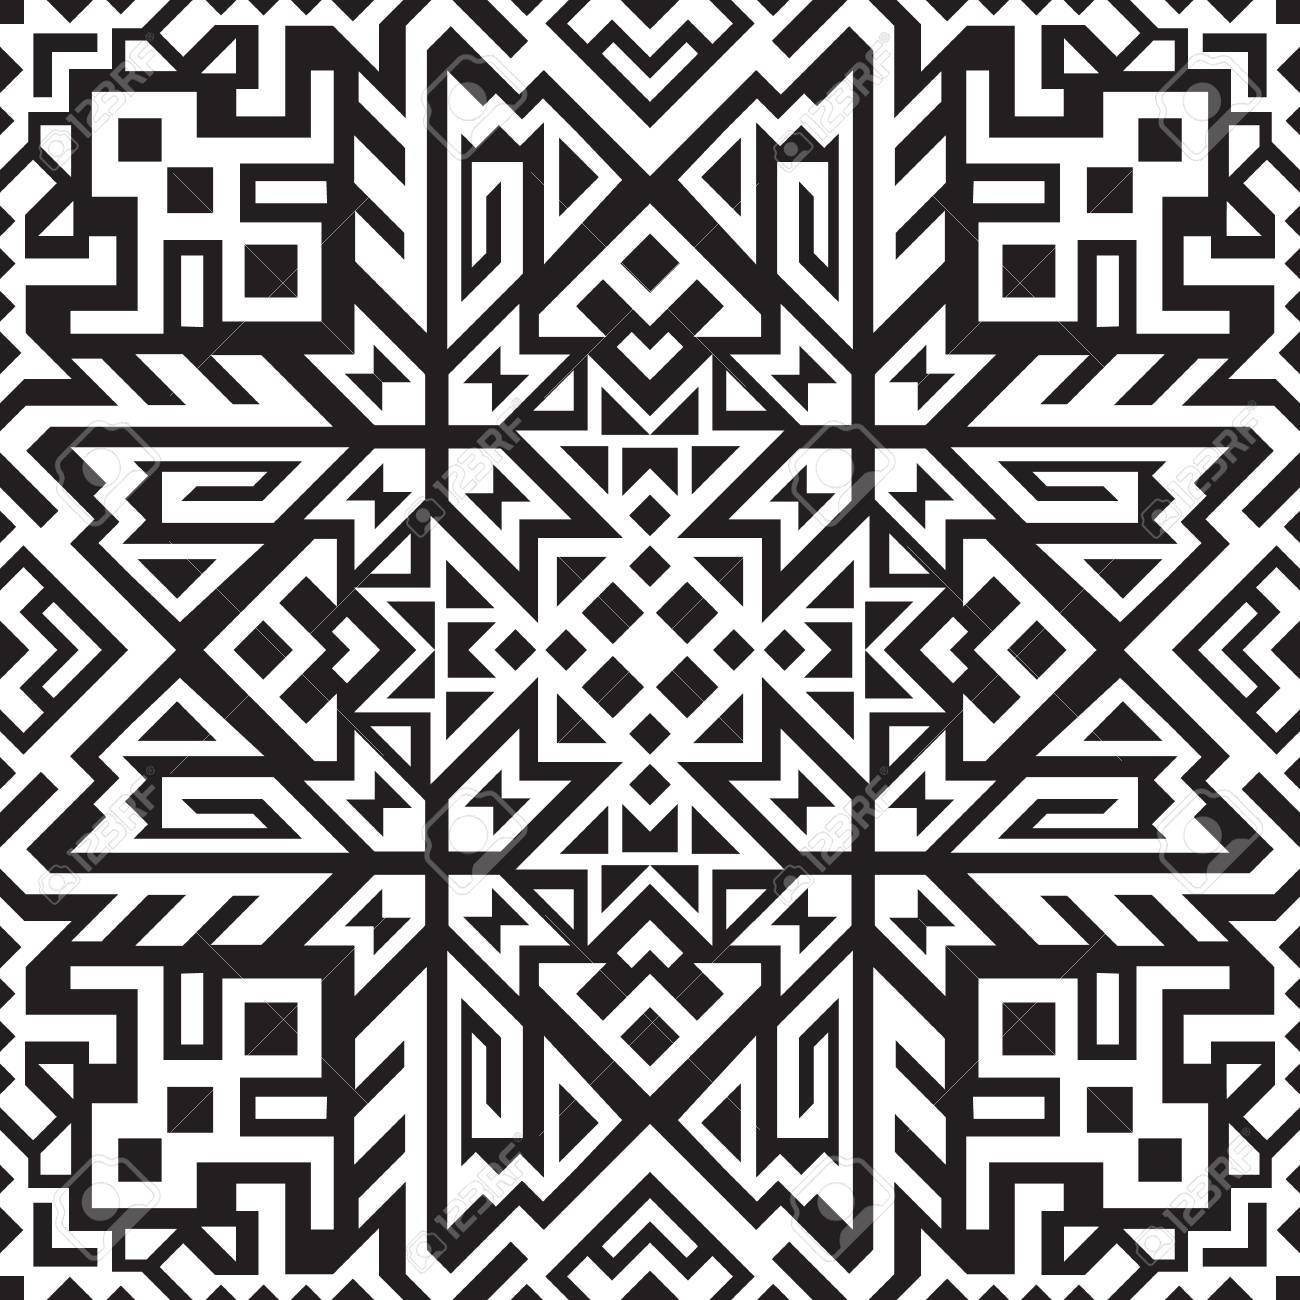 Abstract geometric seamless pattern. Unique scandinavian design. Ethnic style repeat background. Creative tribal vector ornament. Trendy art tile. - 120430689